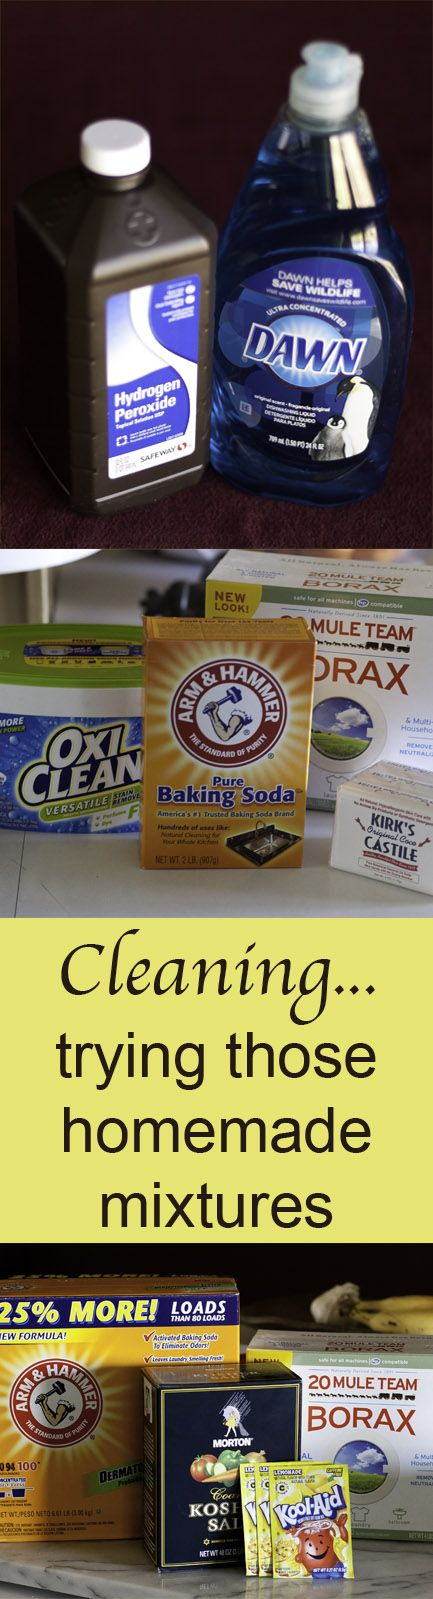 Some DIY cleaners: how they work for me: Cleaning... trying those homemade mixtures Life Currents http://lifecurrents.dw2.net #natural #cleaning #clean #springCleaning #experimenting